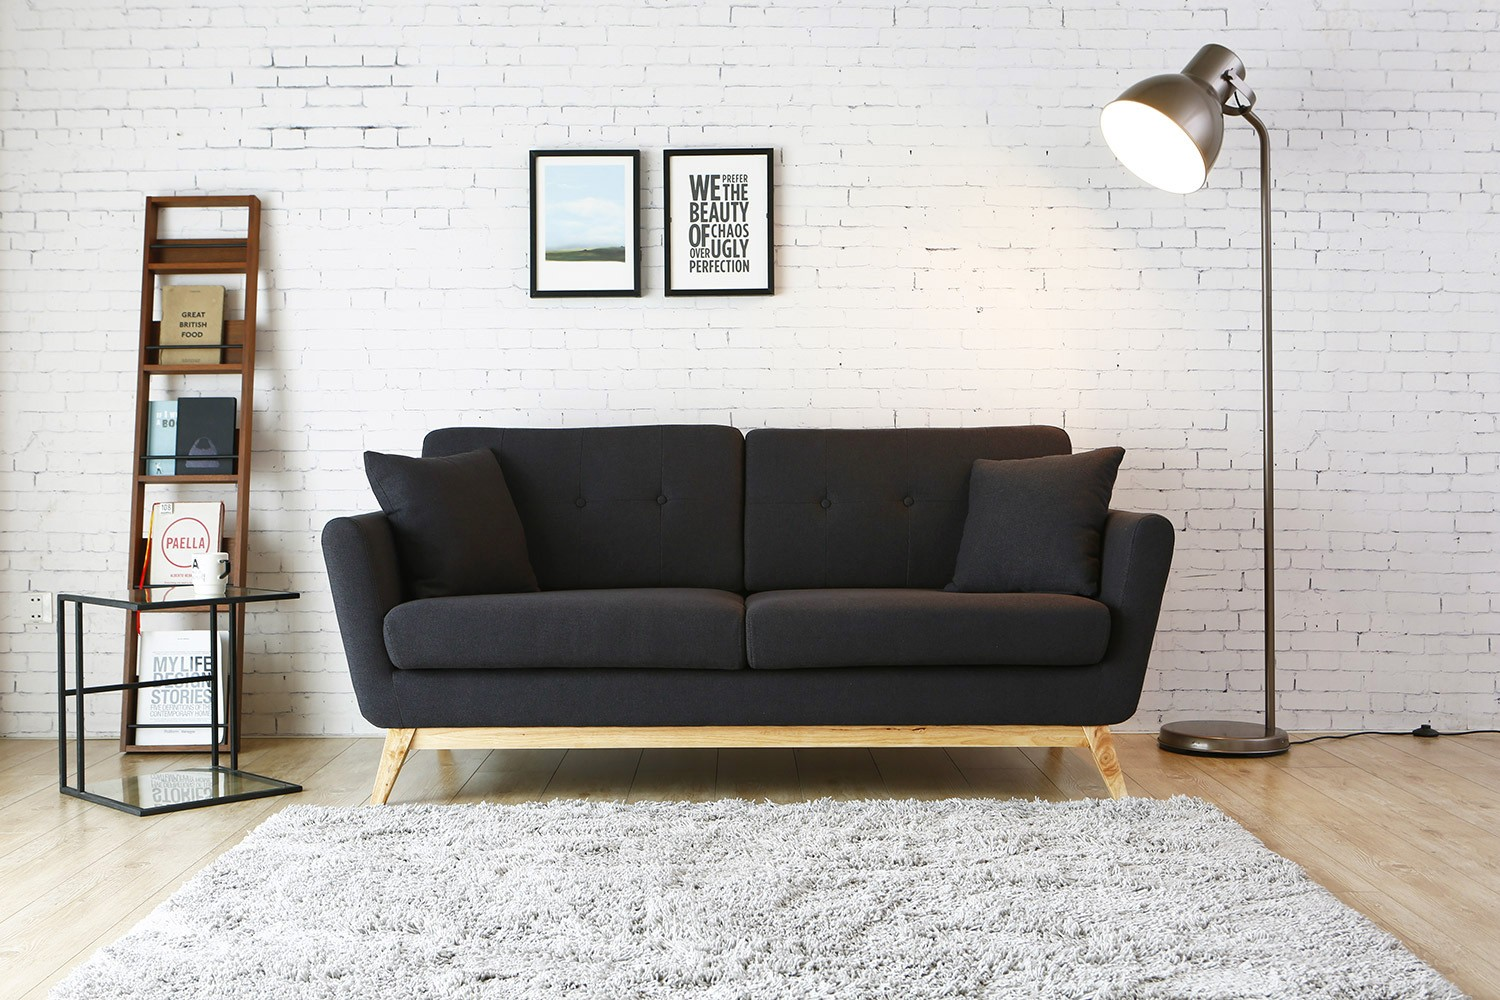 canap scandinave 3 places hga gris anthracite 2 coussins - Canape Scandinave Solde